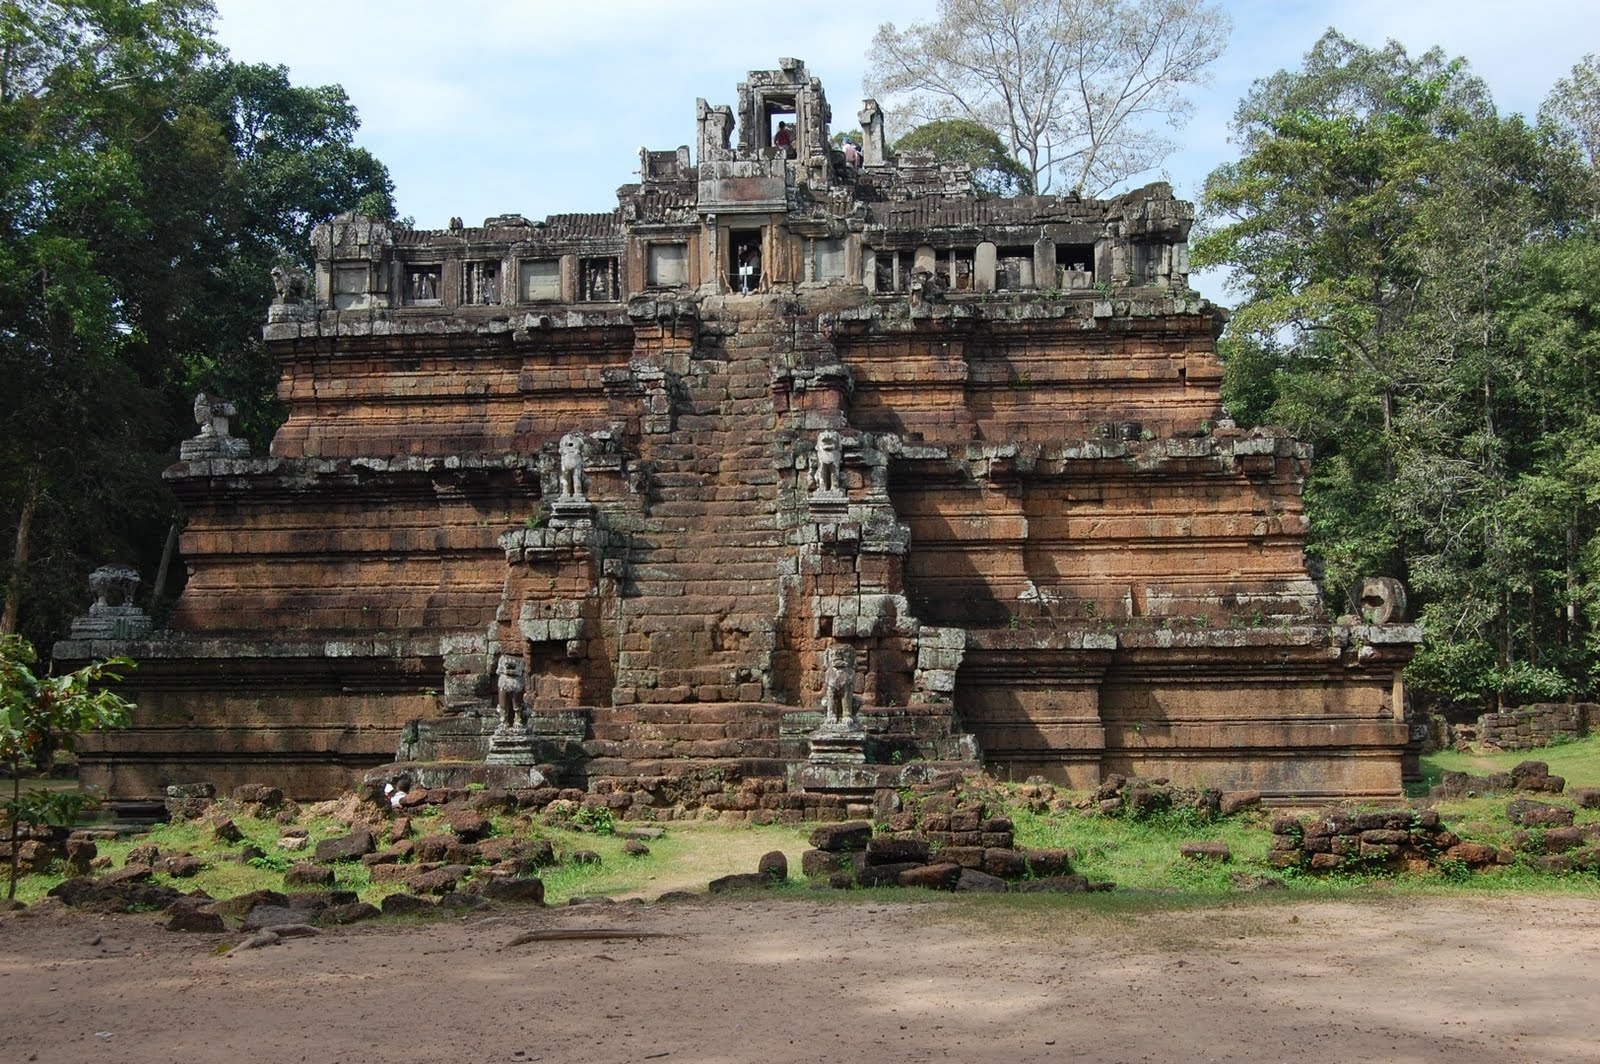 french colinized cambodia David chandler traces cambodia's history from medieval times to the 1991 paris peace accords, examining the ways history has shaped the country's present day politics.